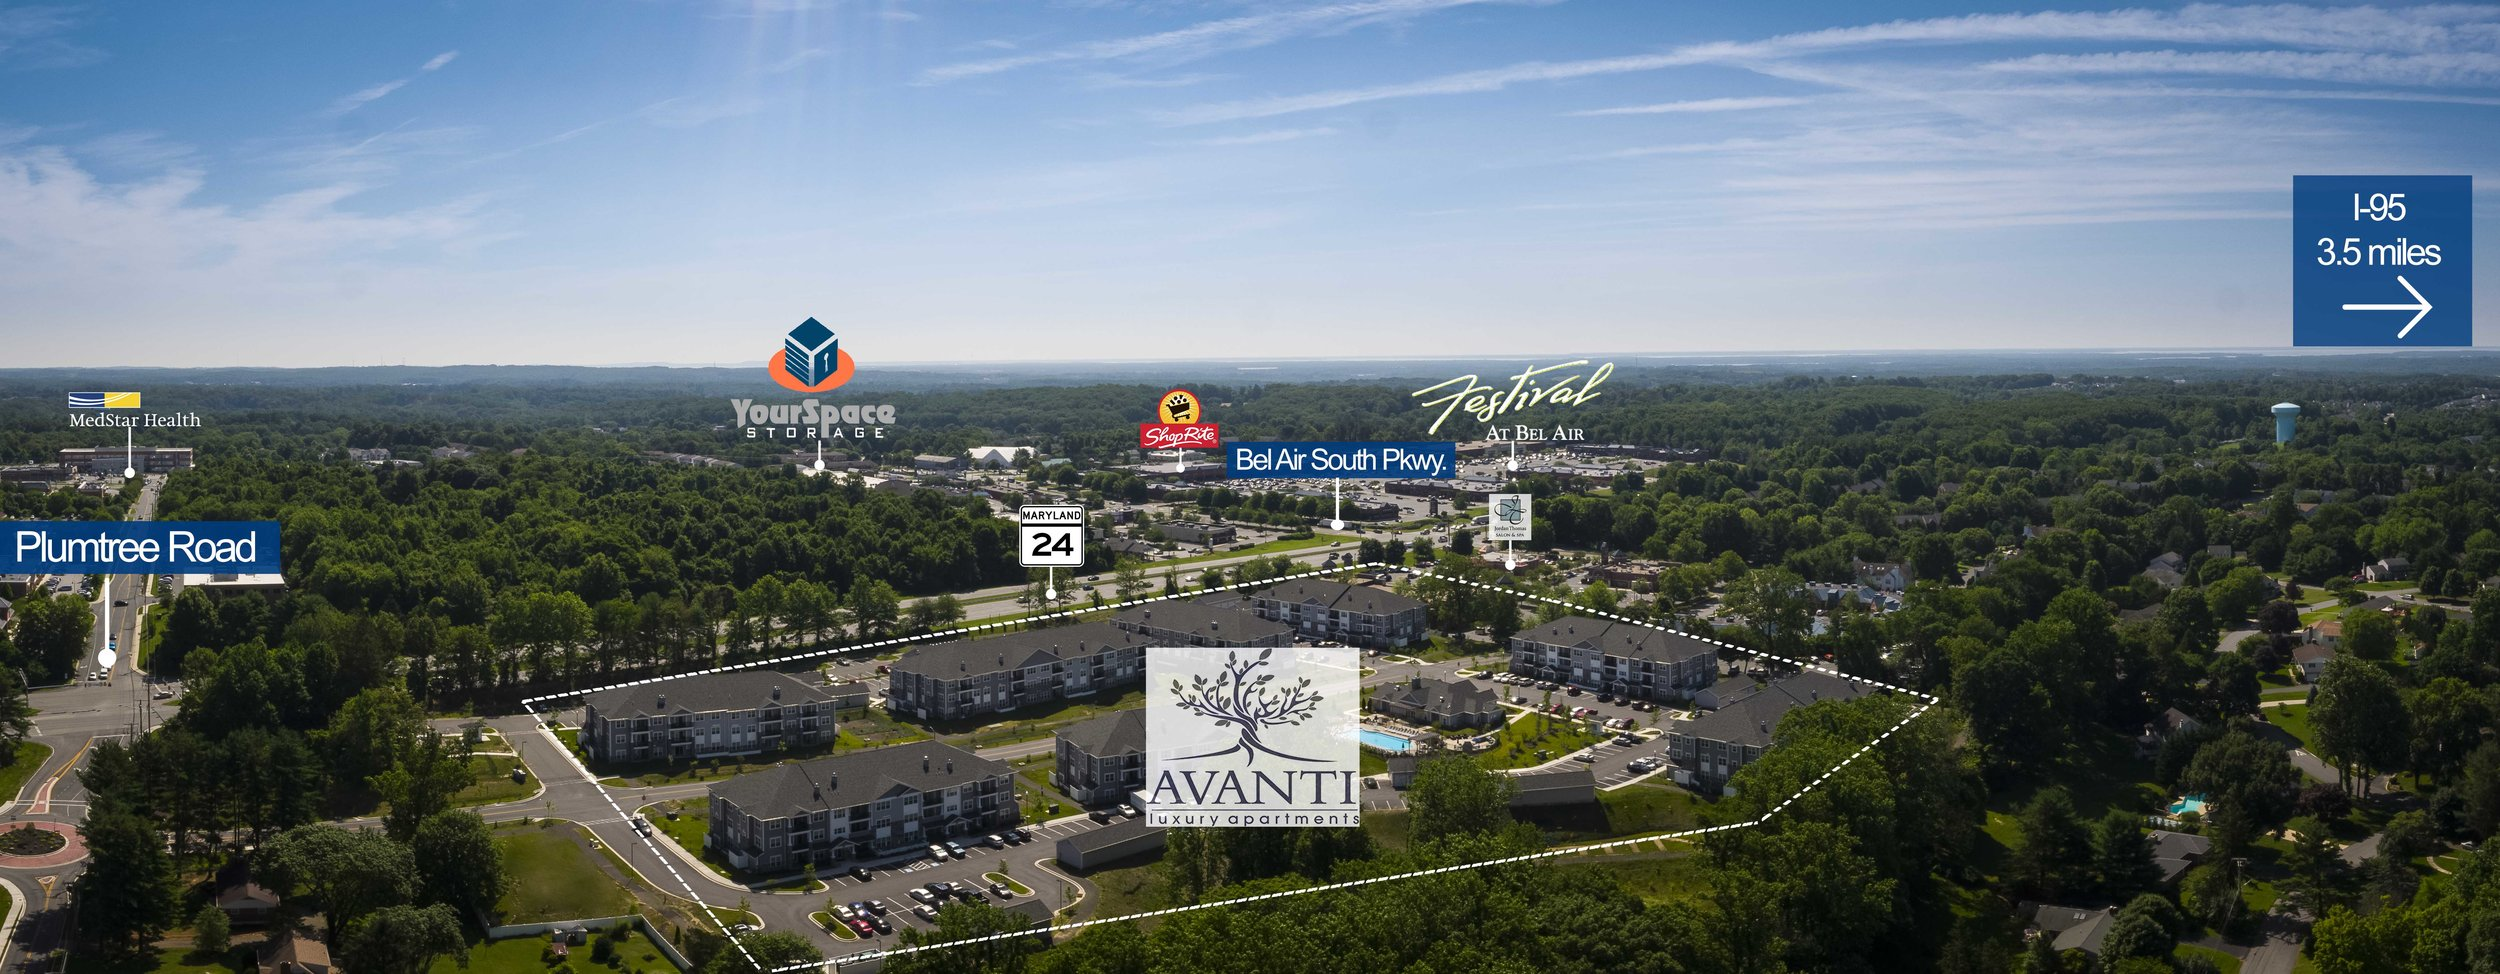 Aerial View of Avanti Luxury Apartments in Bel Air, MD